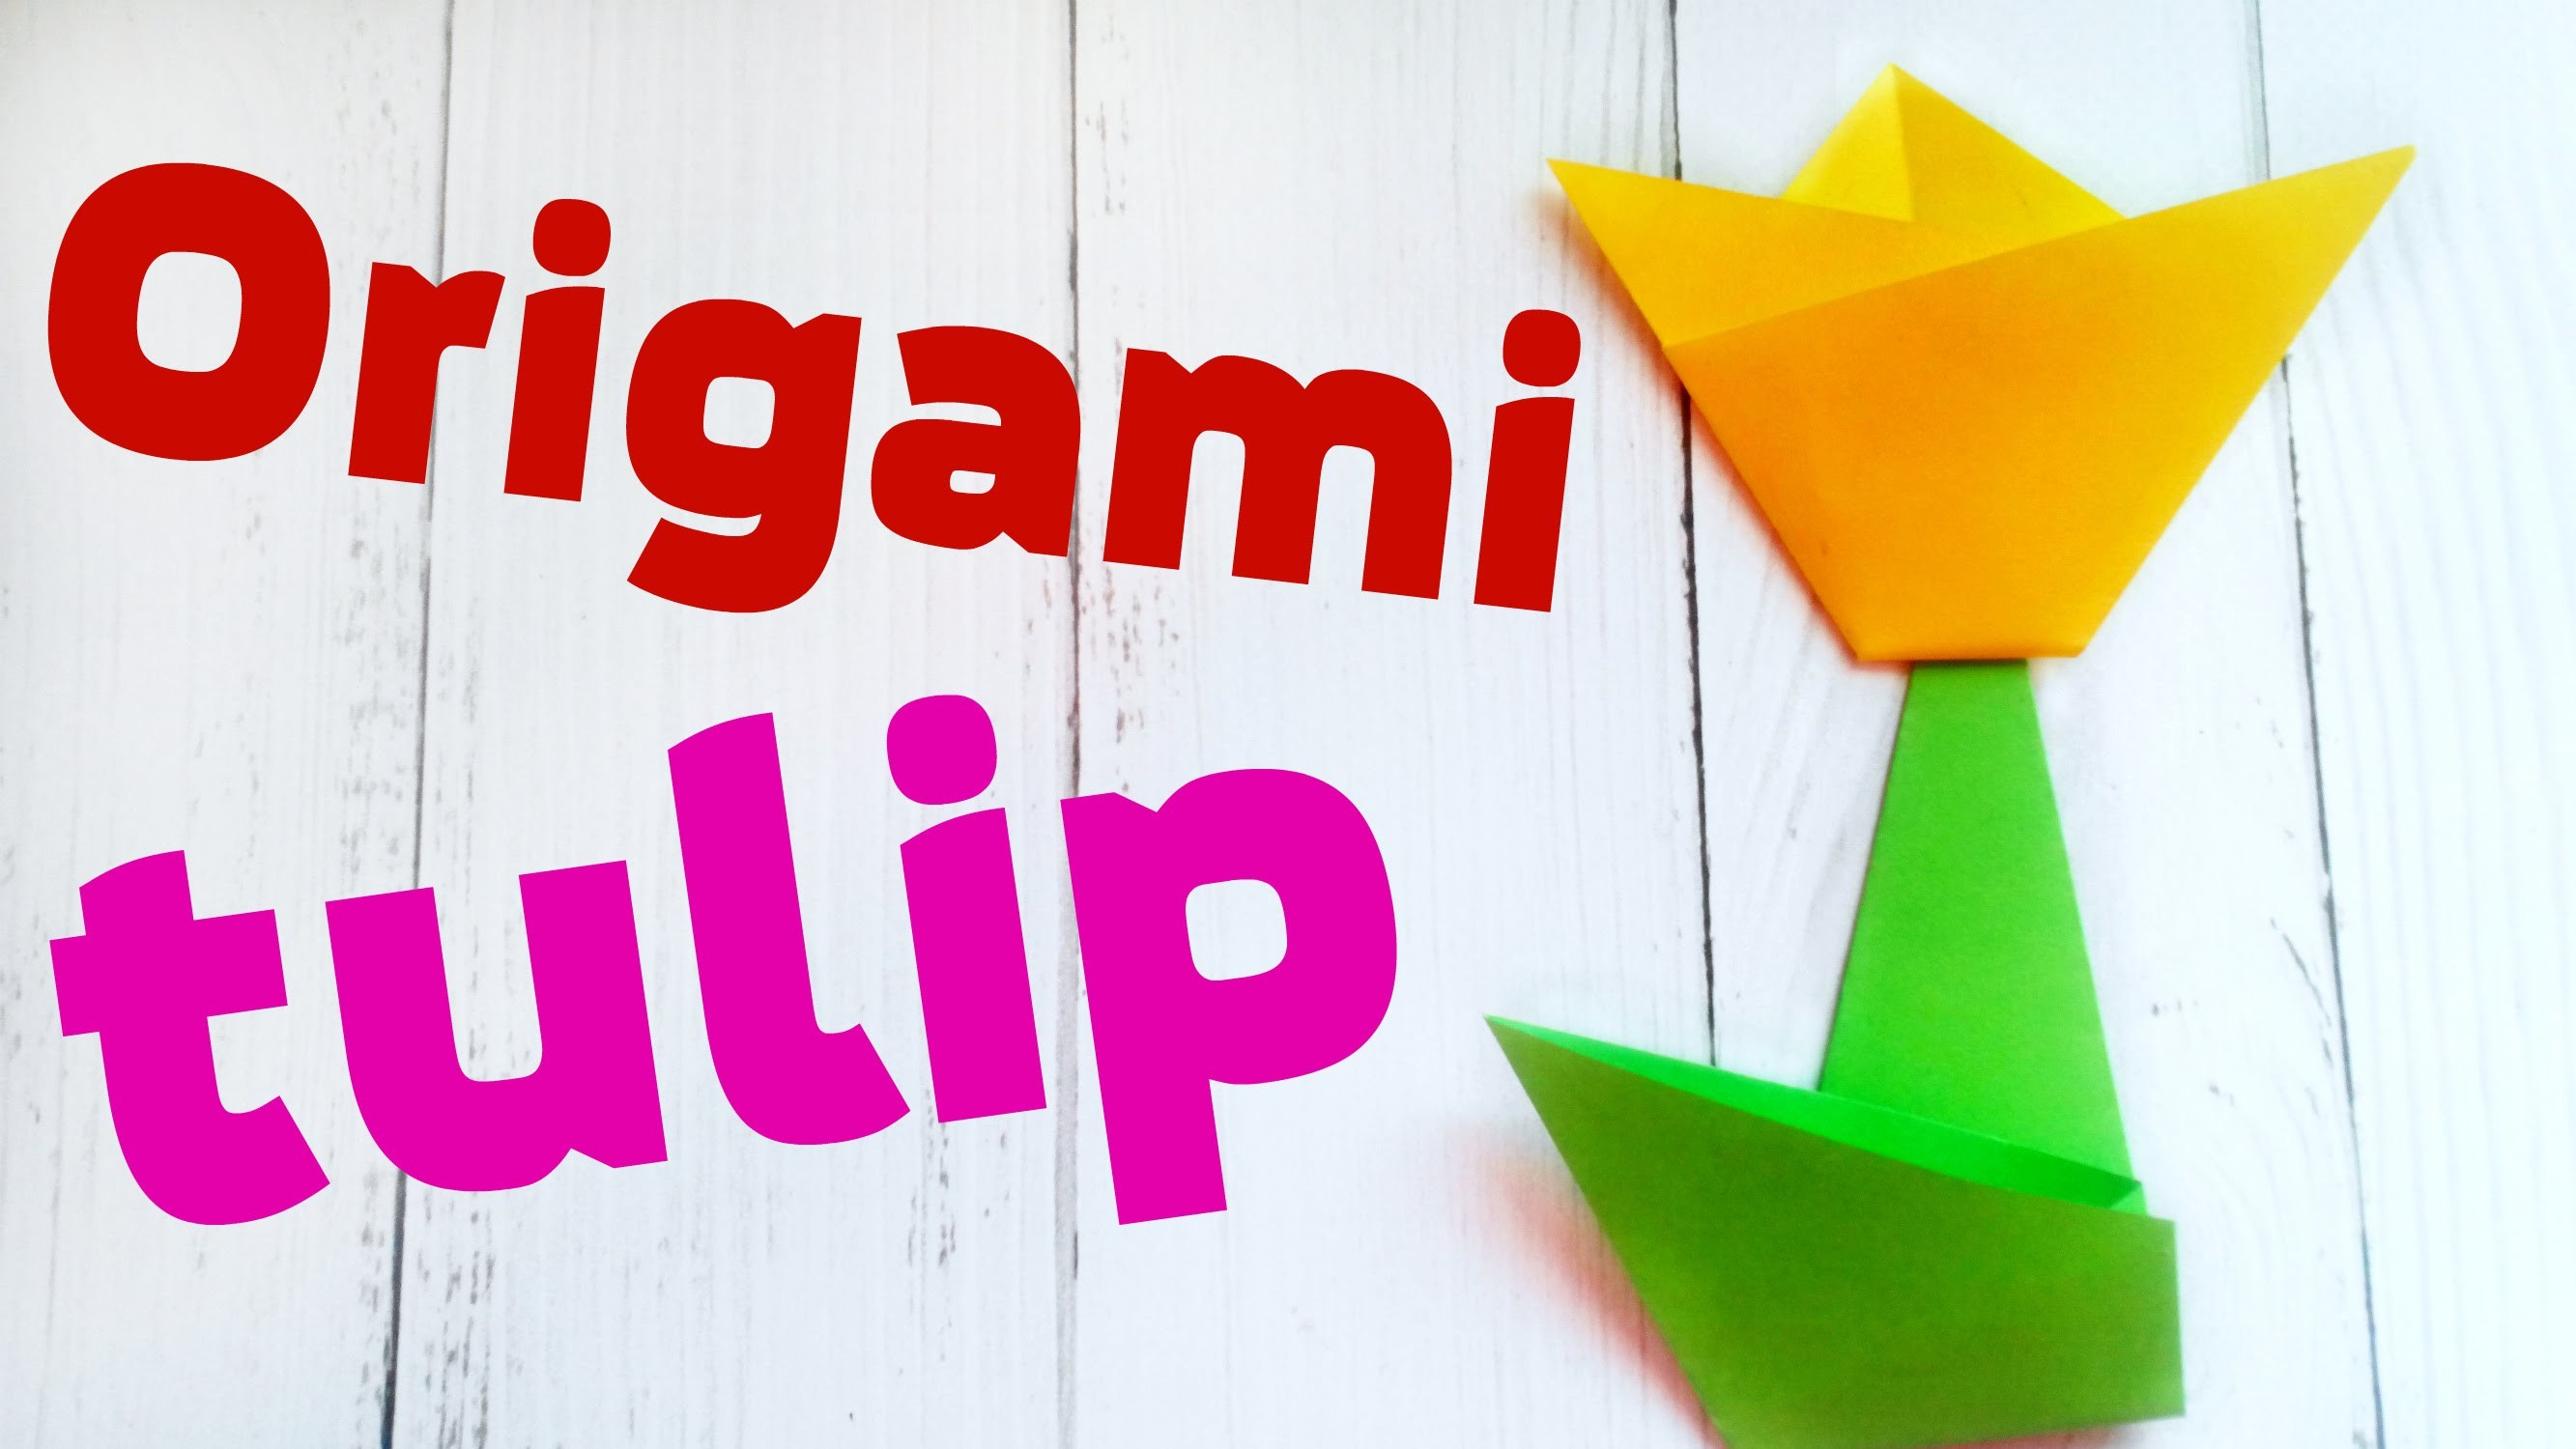 Easy 3d Origami Tulip Flower Scheme For Kids For Beginners Step By